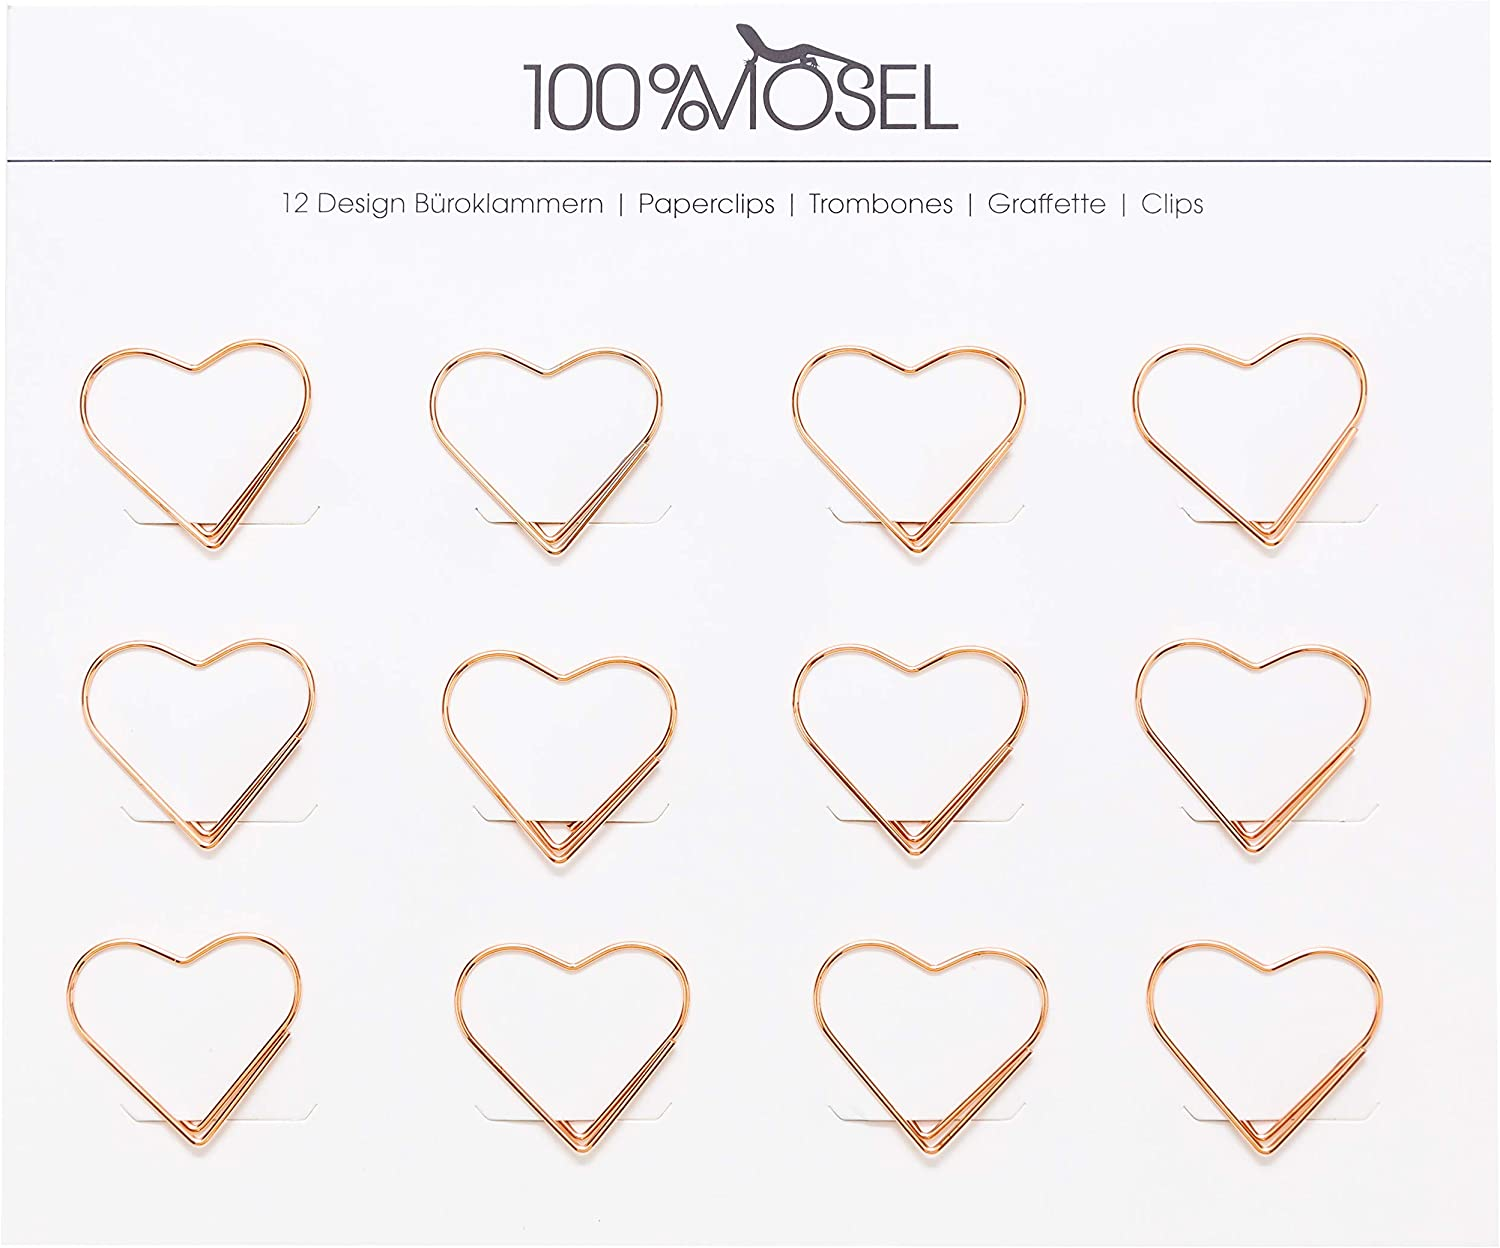 heart 3 x 2.7 cm paper clips rose gold metal letter clips motif paper clips as decoration bookmark or souvenir Paper clips pack of 12